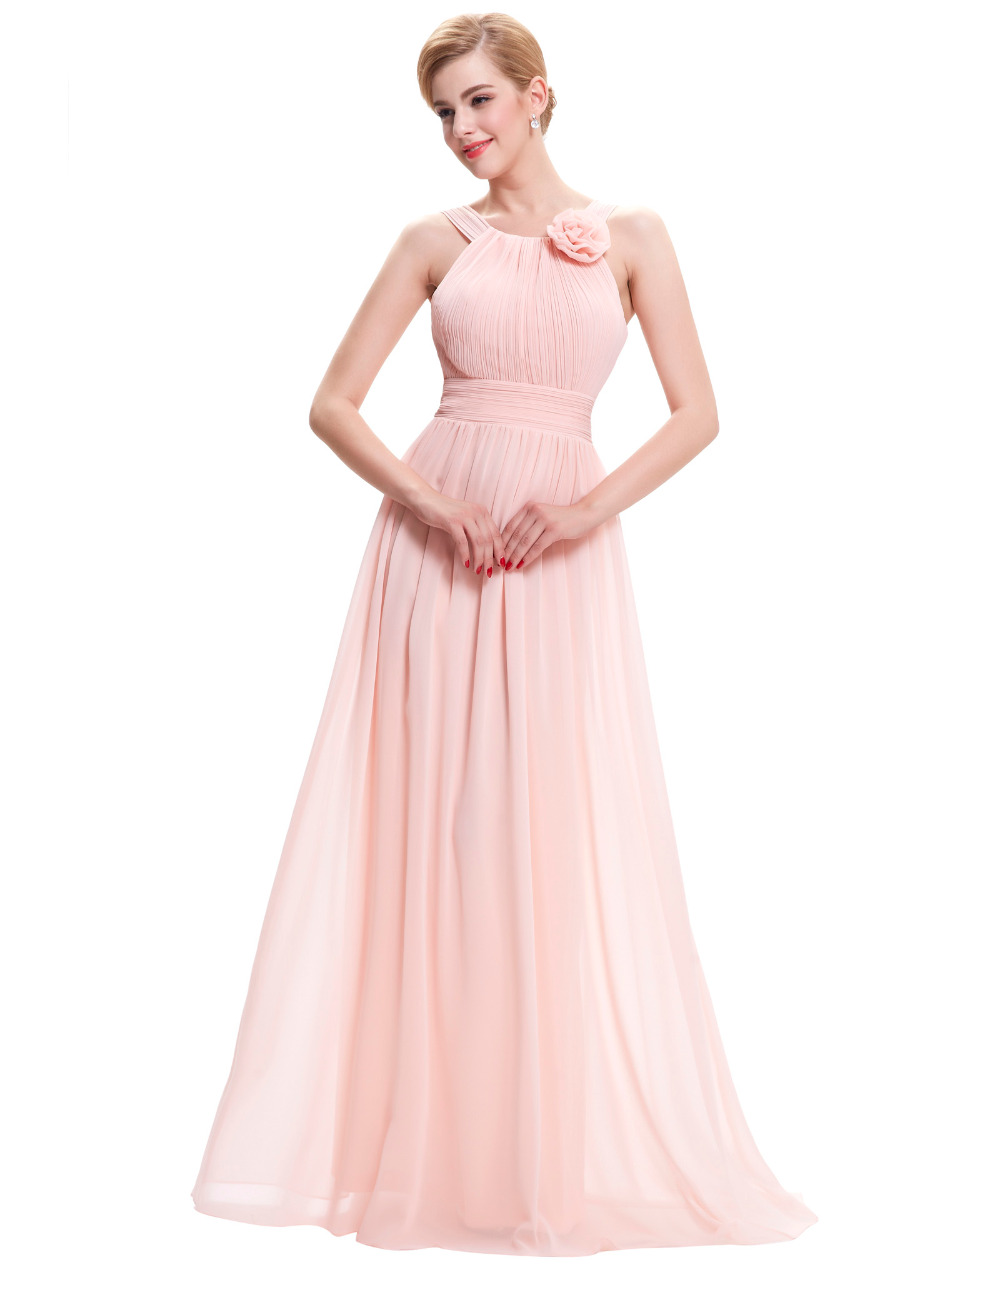 Long pink evening dress 2016 new arrival formal dresses for Dresses for afternoon wedding